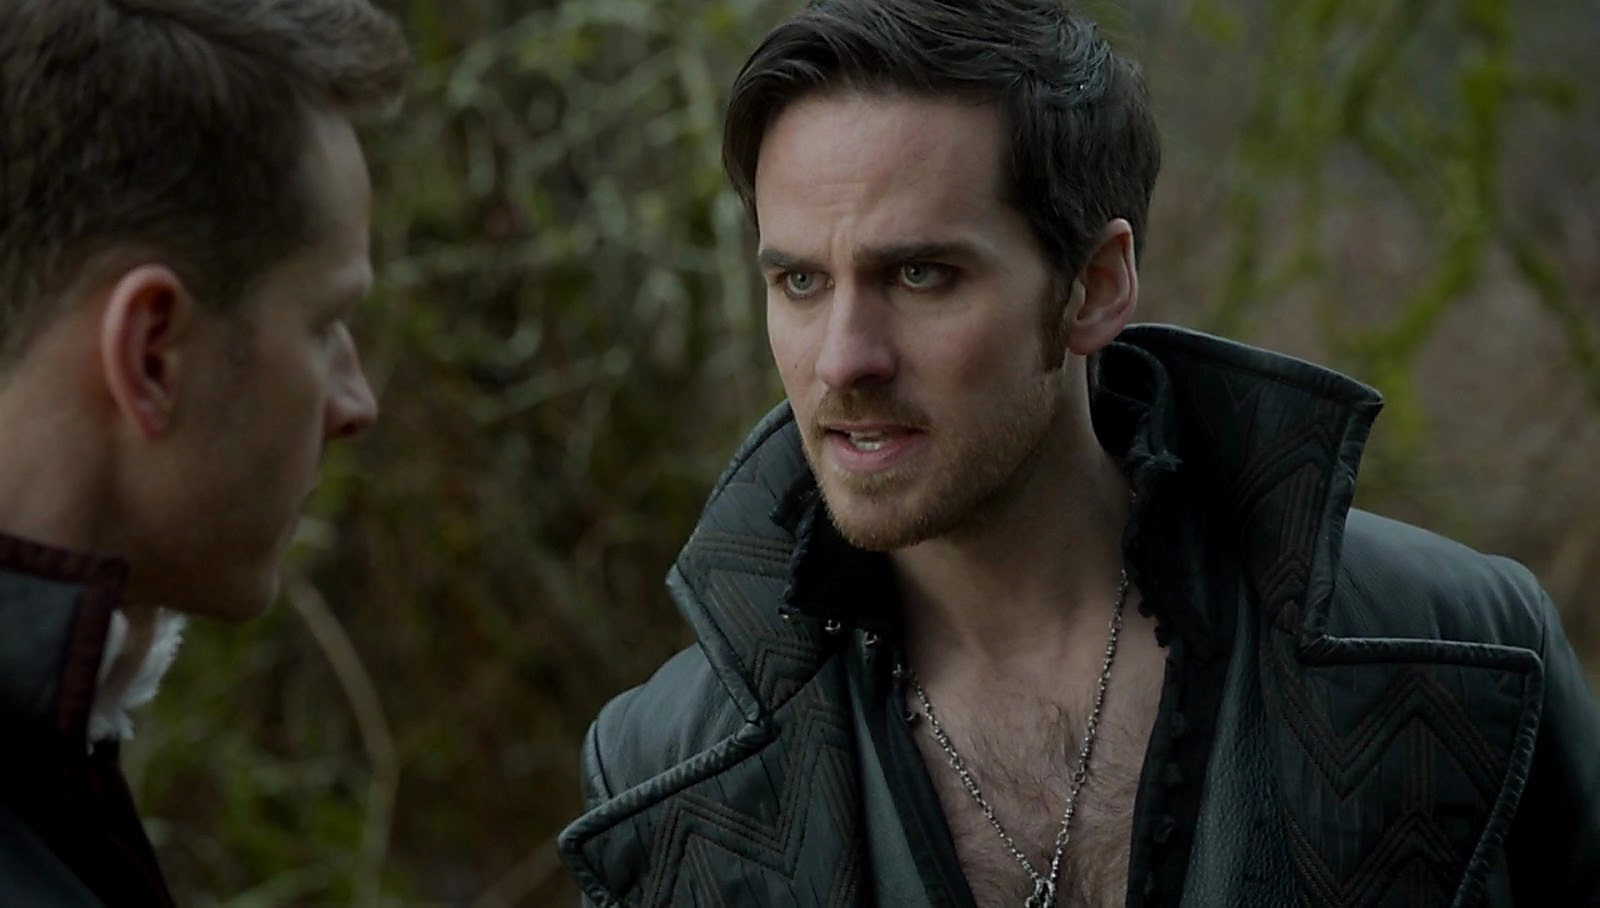 Colin O Donoghue sexy shirtless scene July 31, 2017, 10am